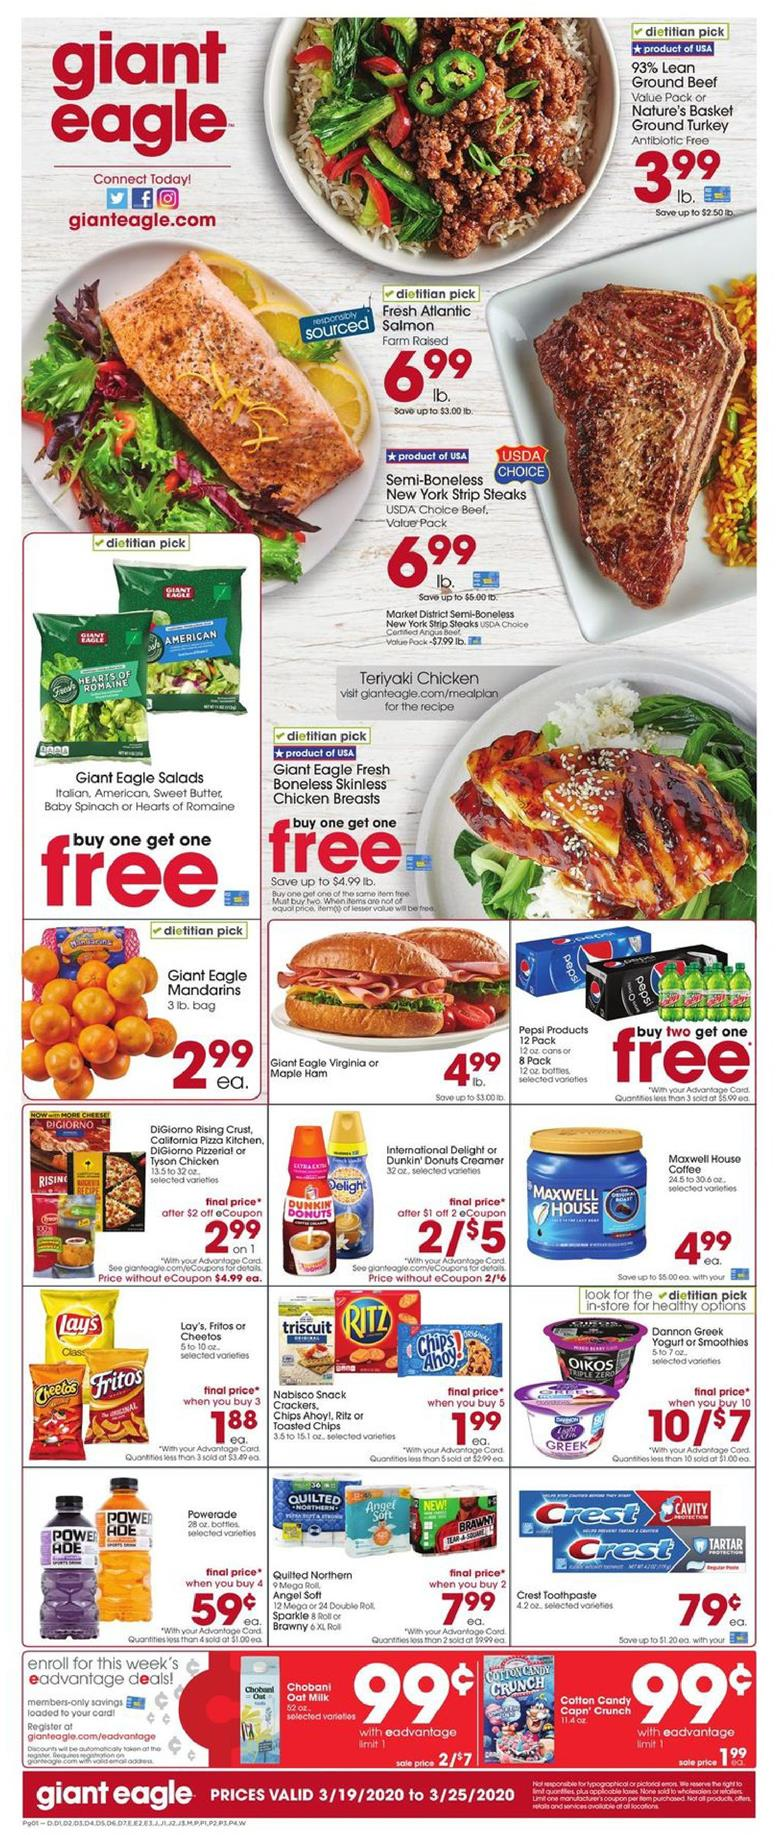 Giant Eagle March Grocery Sale Ad valid from Mar 18 – 24, 2020.